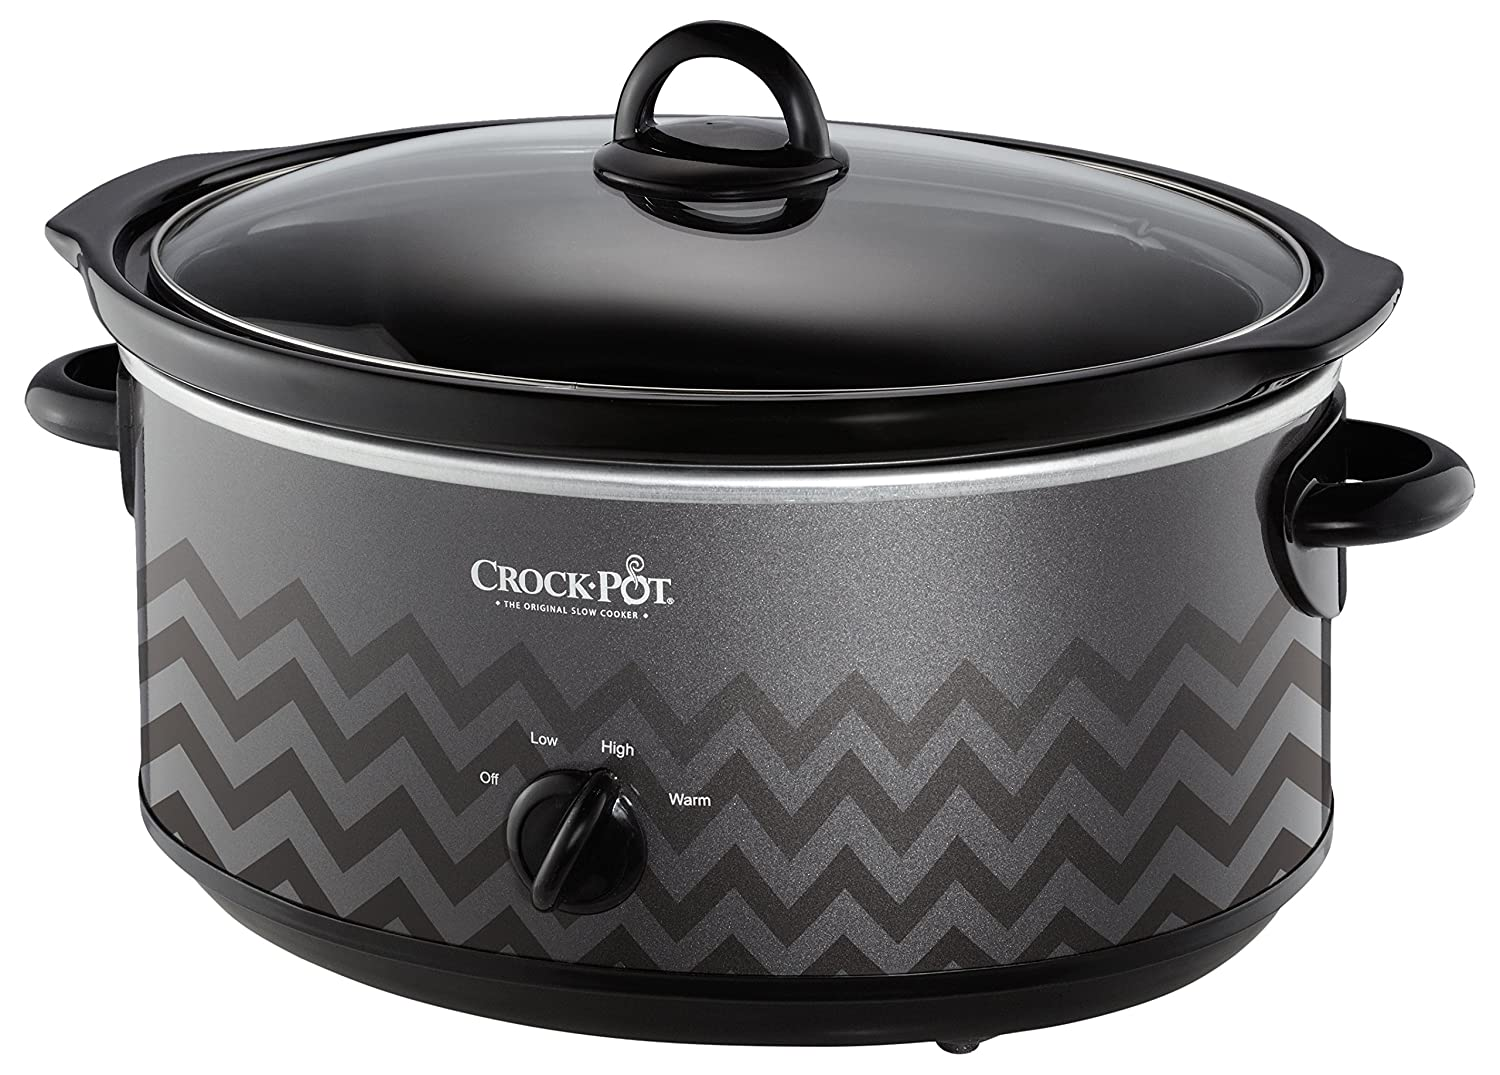 Crock-Pot SCV700-KC 7-qt. Slow Cooker(Charcoal) Crockpot SCV700-KC-